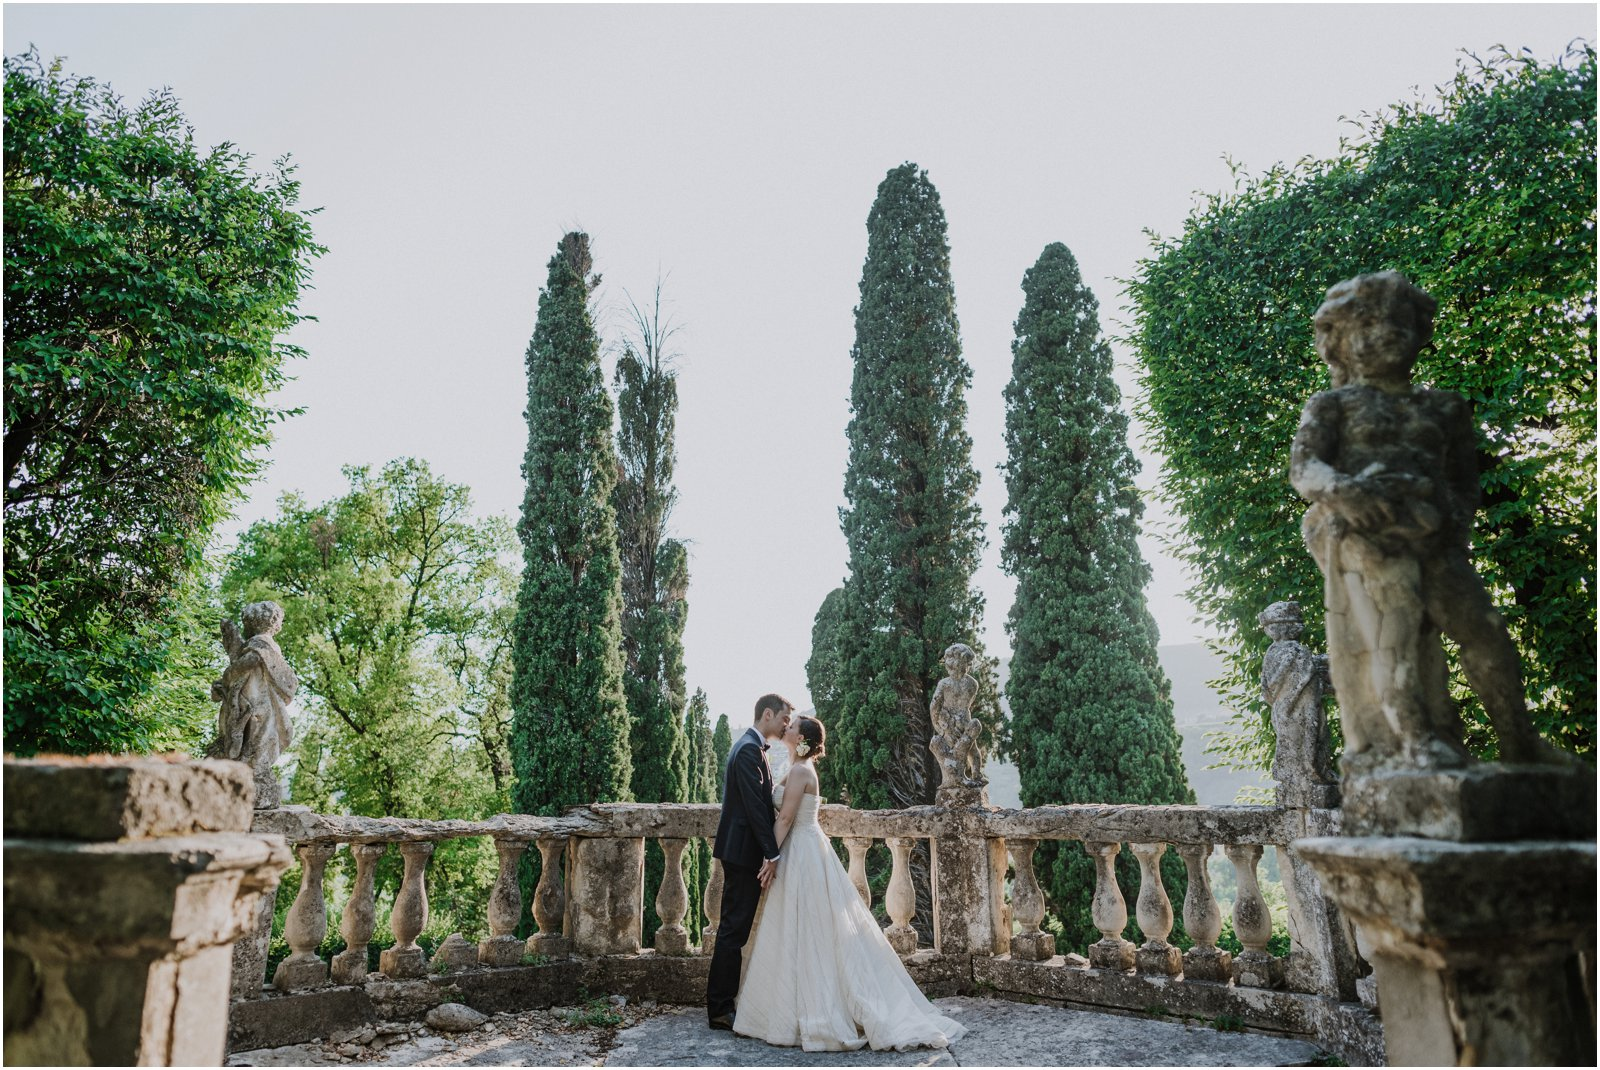 veronasposi foto e video matrimonio verona_0584